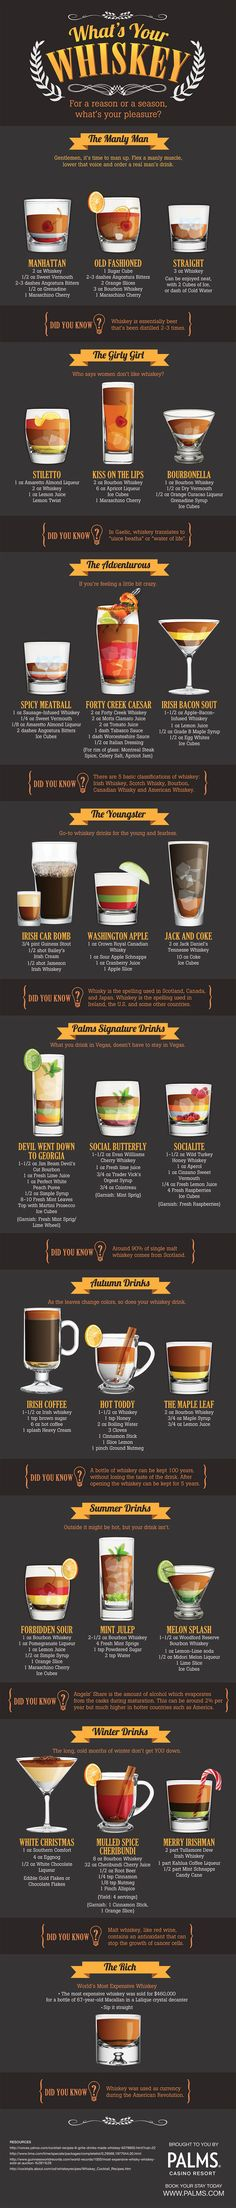 What's Your Whiskey?  UM, ALL OF THEM ARE MY WHISKEY, MR. INFOGRAPHIC.